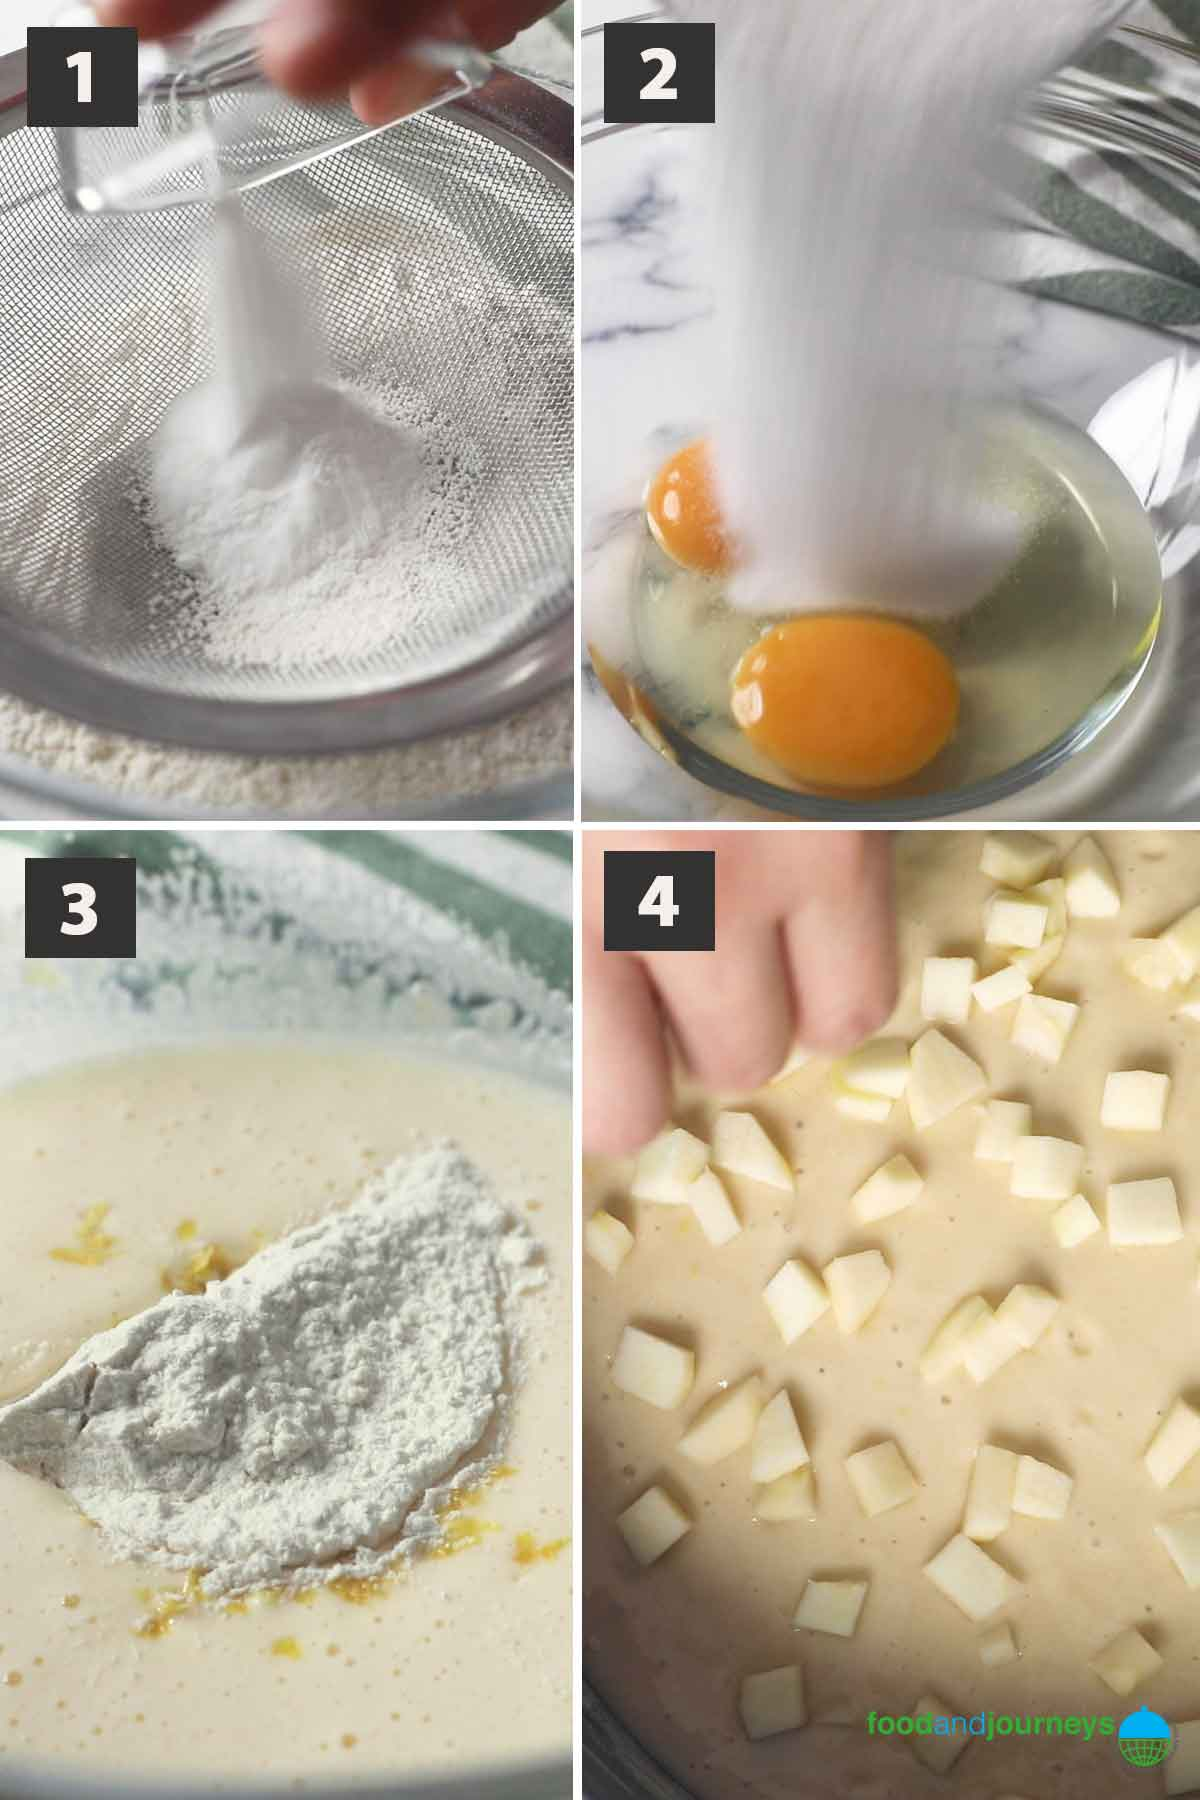 Updated first part of a collage of images showing the step by step process on how to make rustic apple cake.